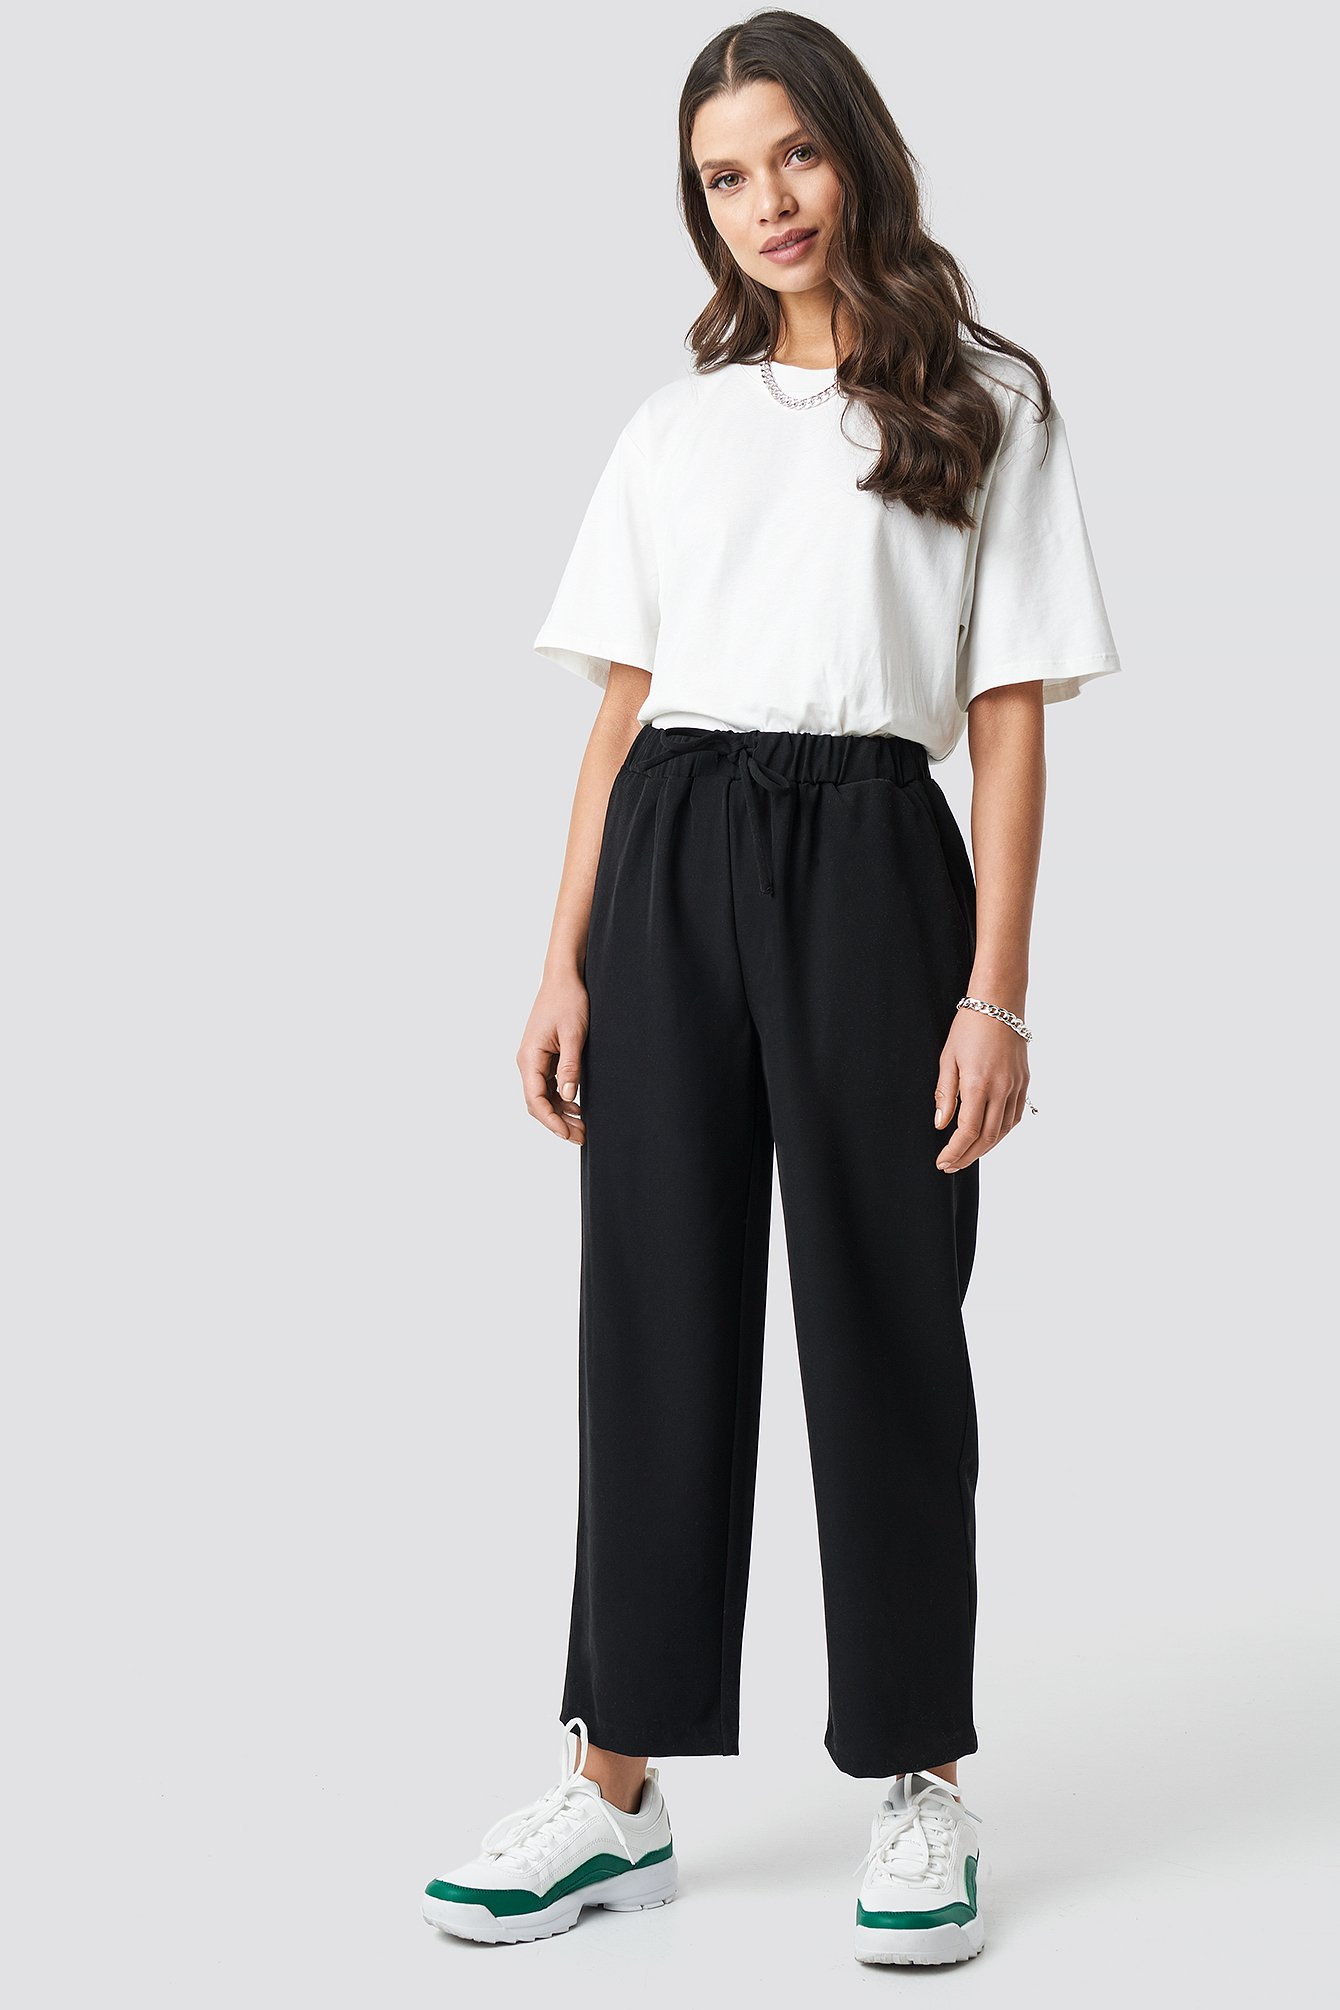 astrid olsen x na-kd -  Drawstring Suit Pants - Black